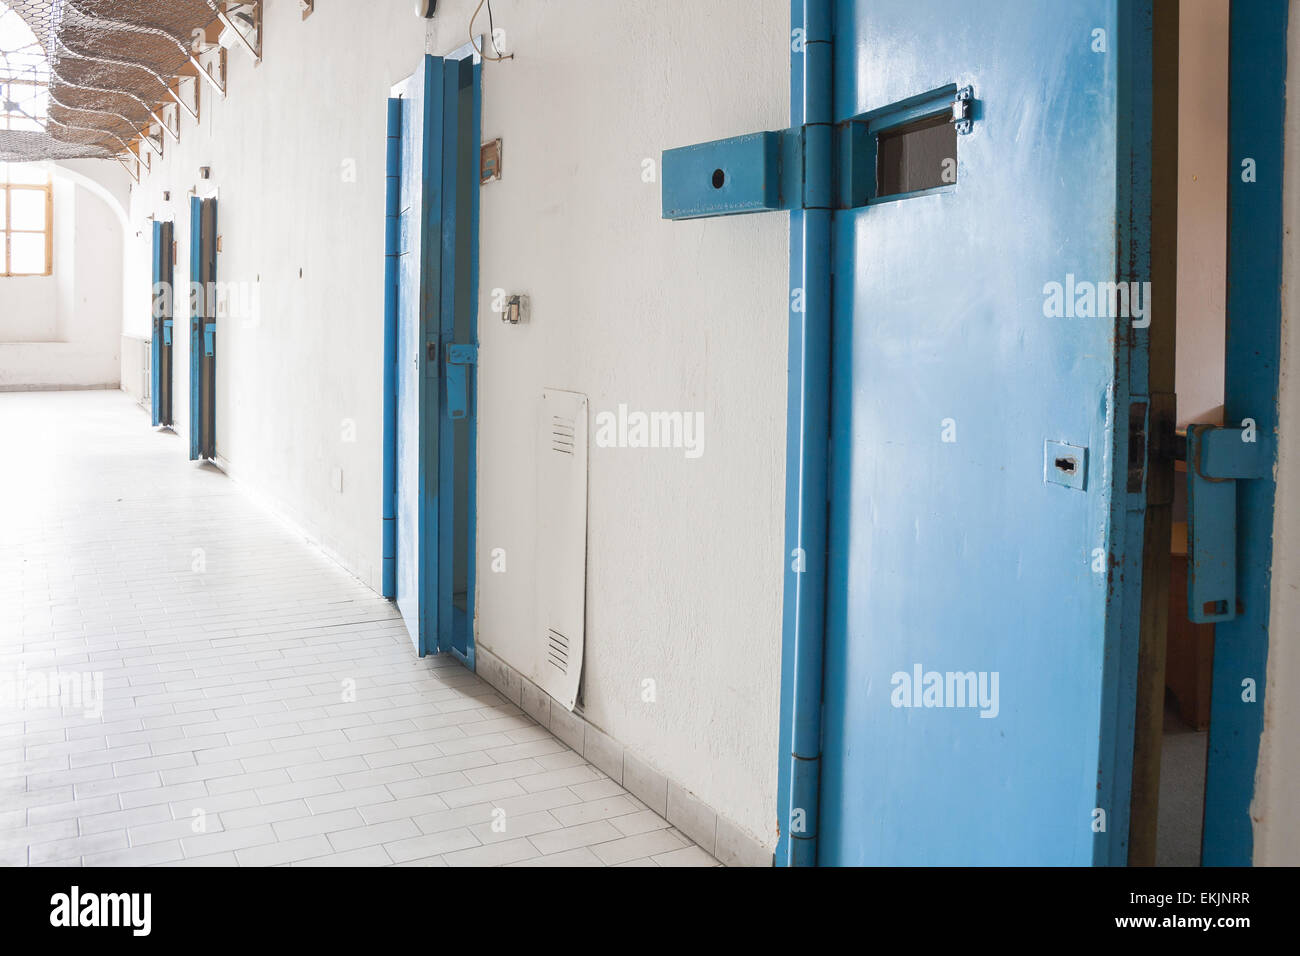 Line of armored doors. Four security doors. & Line of armored doors. Four security doors Stock Photo Royalty ... Pezcame.Com